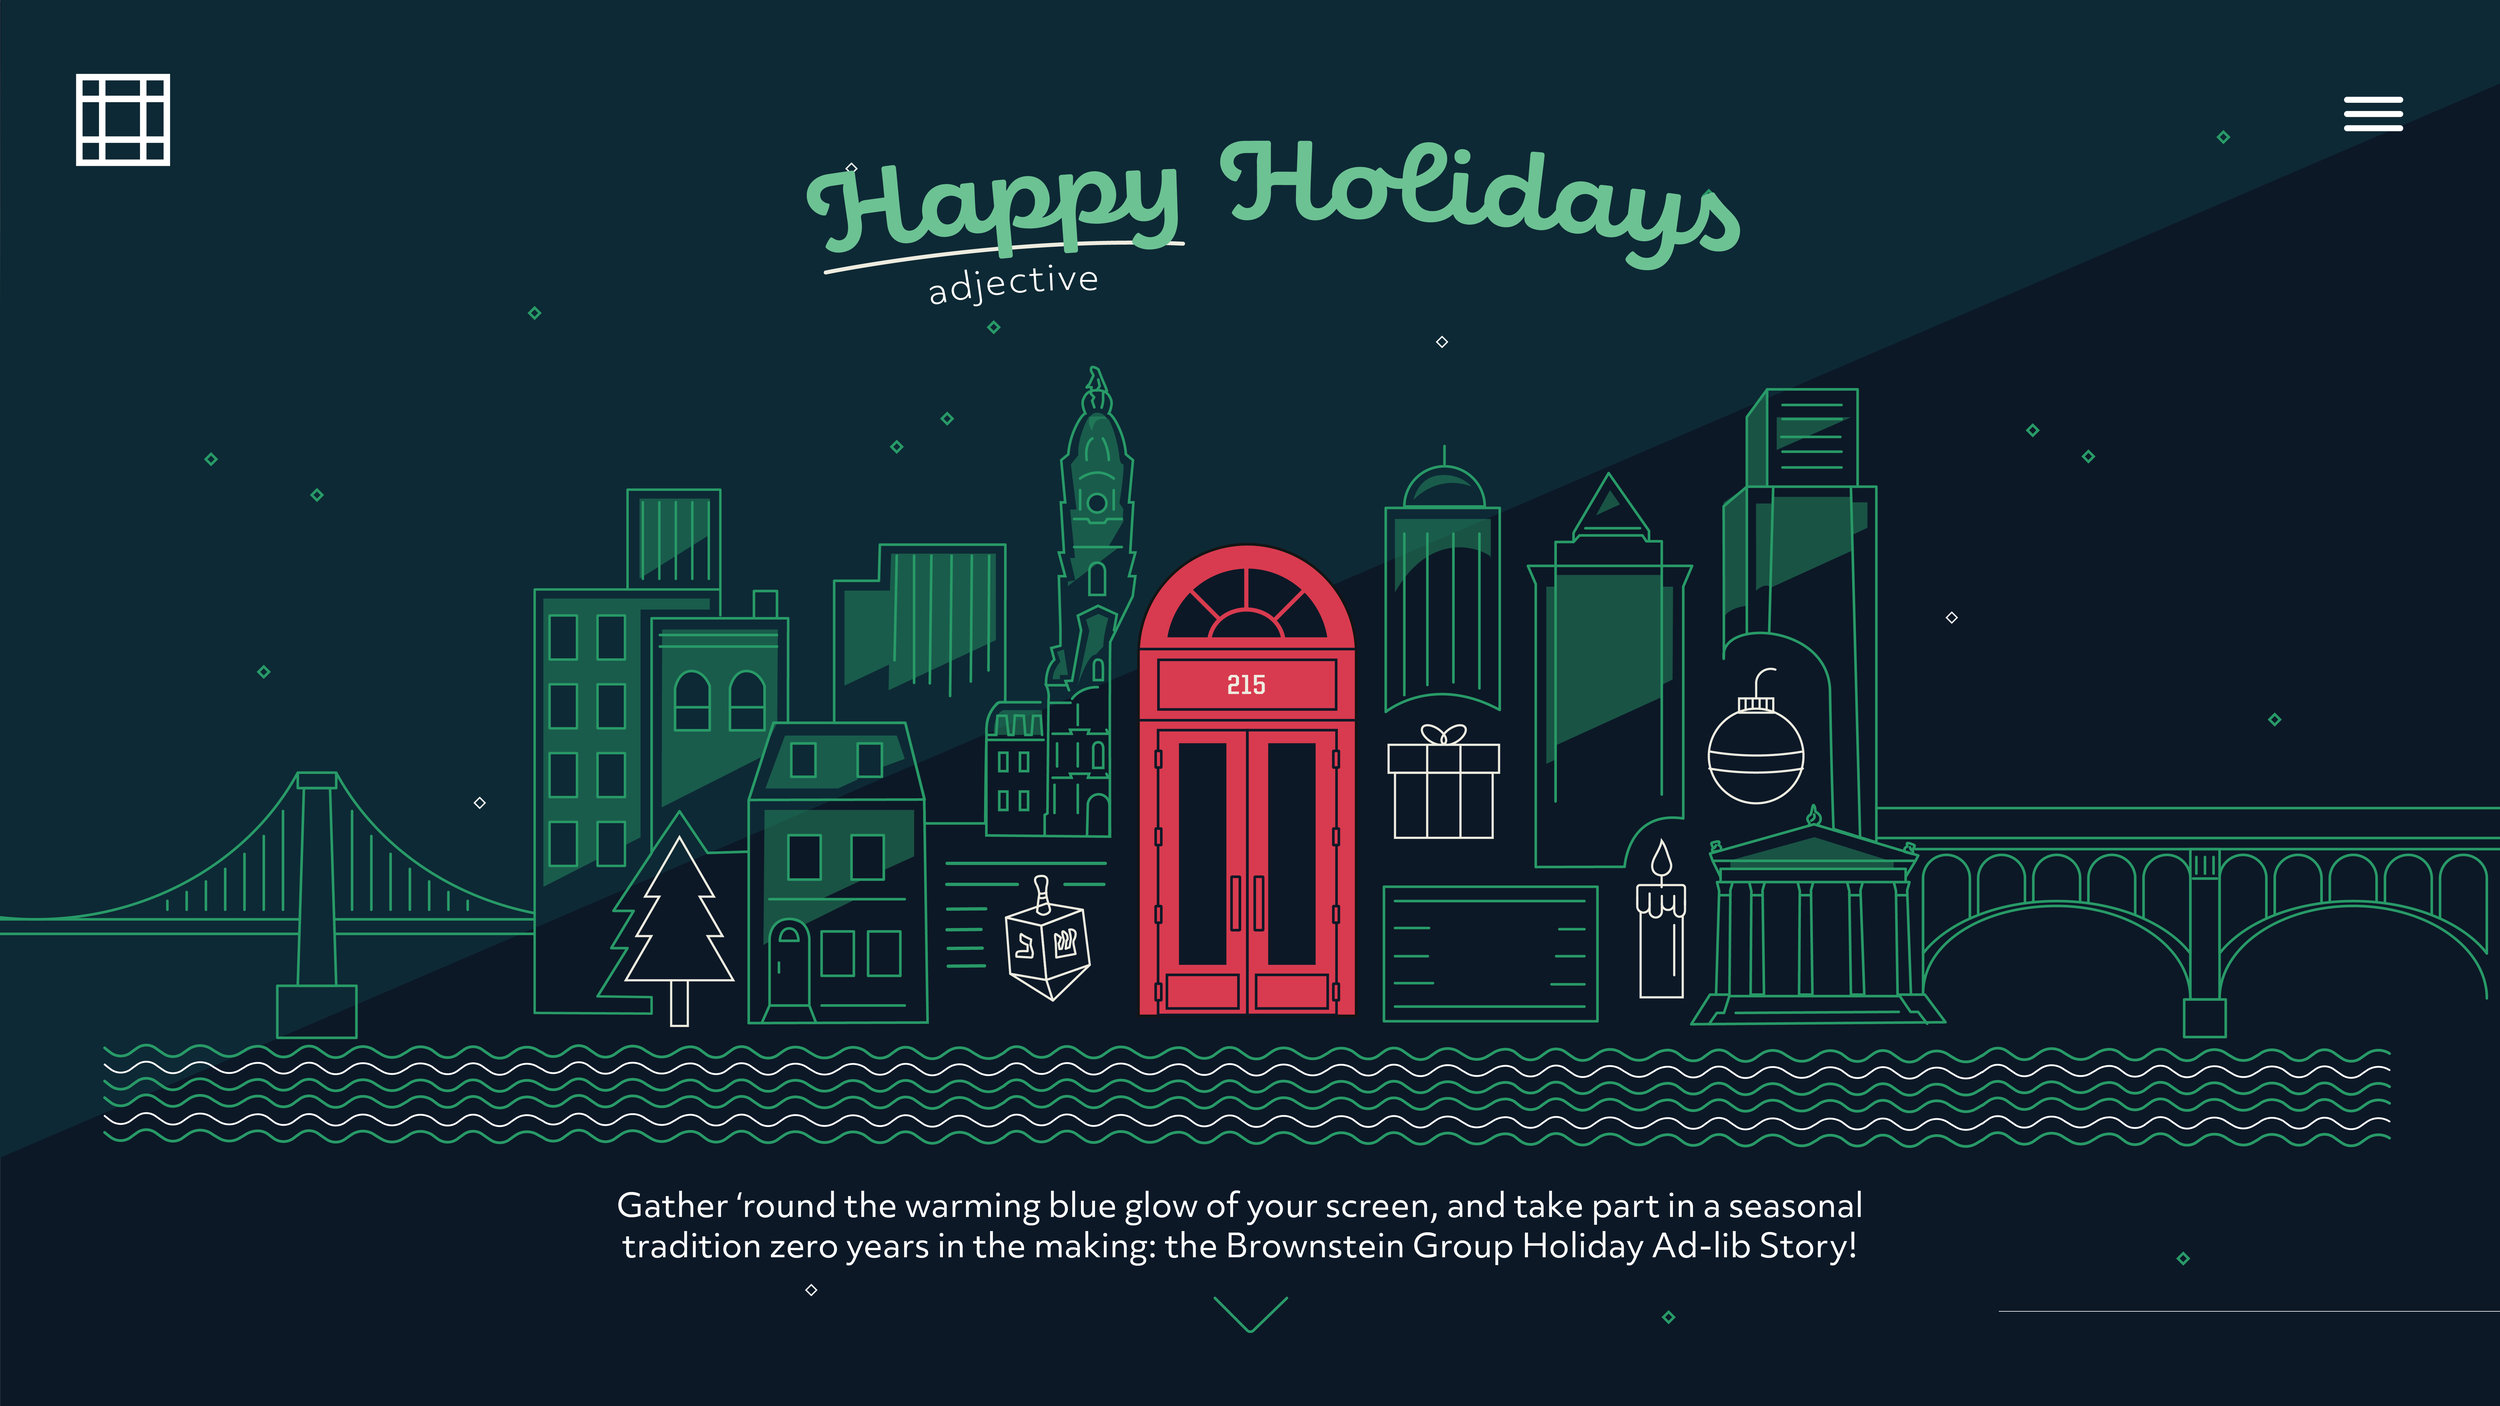 01_Holiday-Card-01.jpg